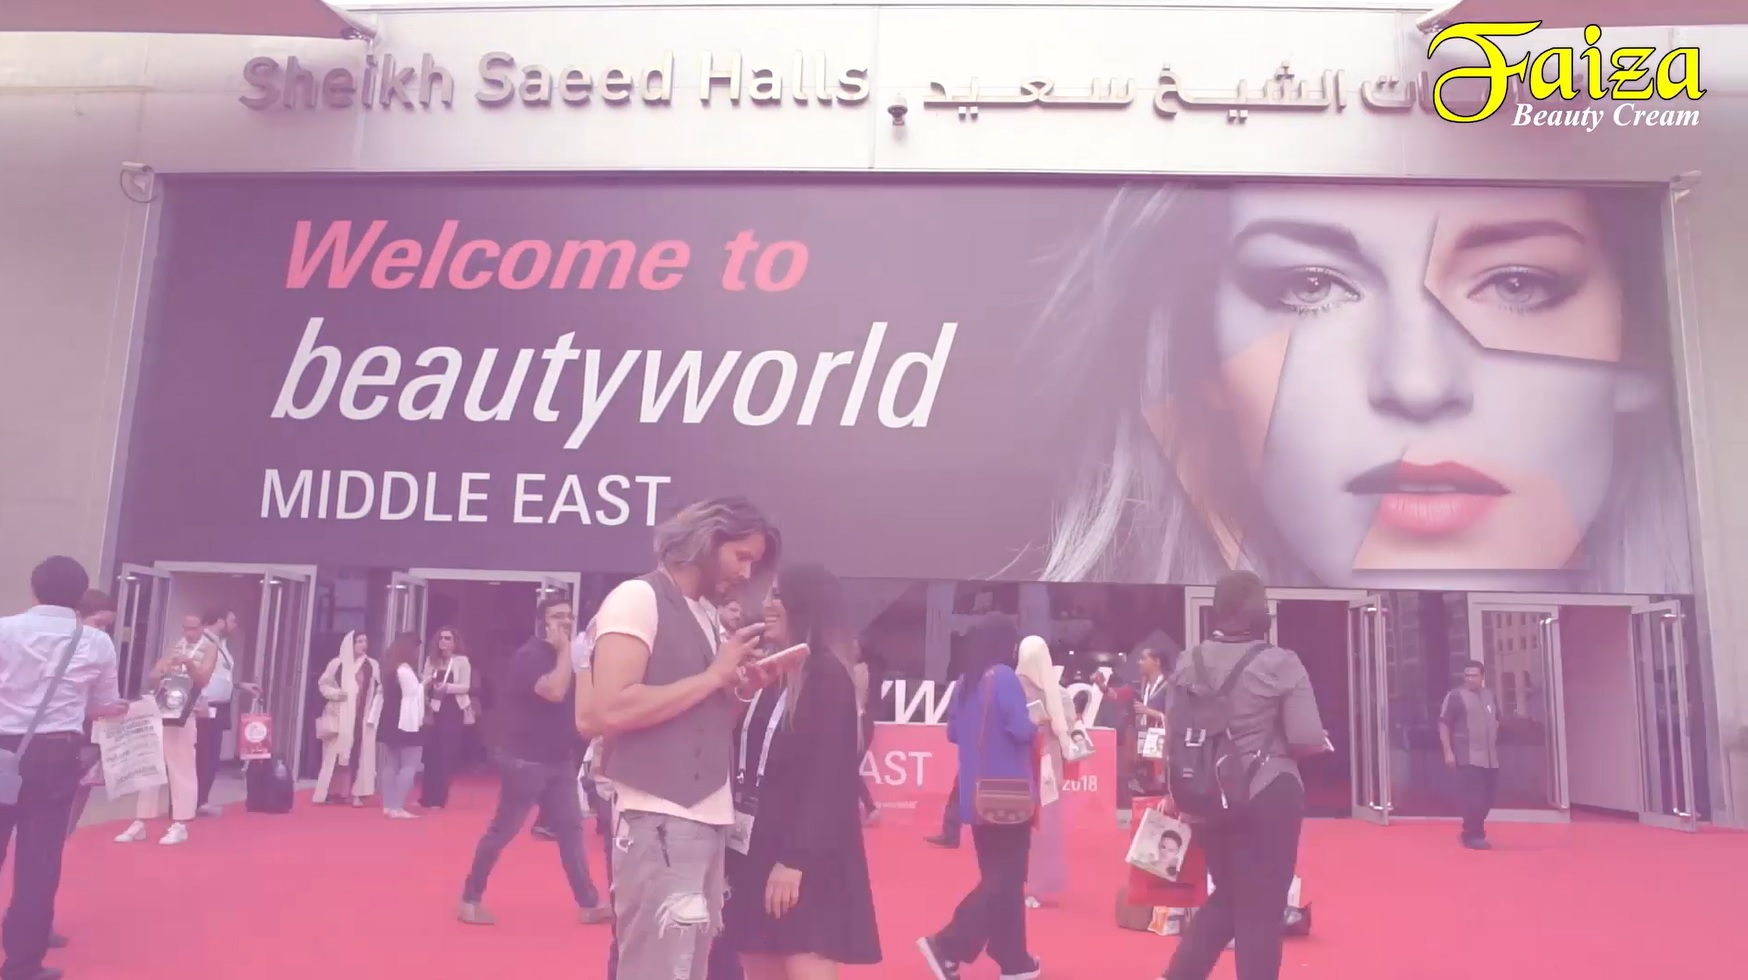 Faiza Beauty Cream @ Beauty World 2018, Dubai